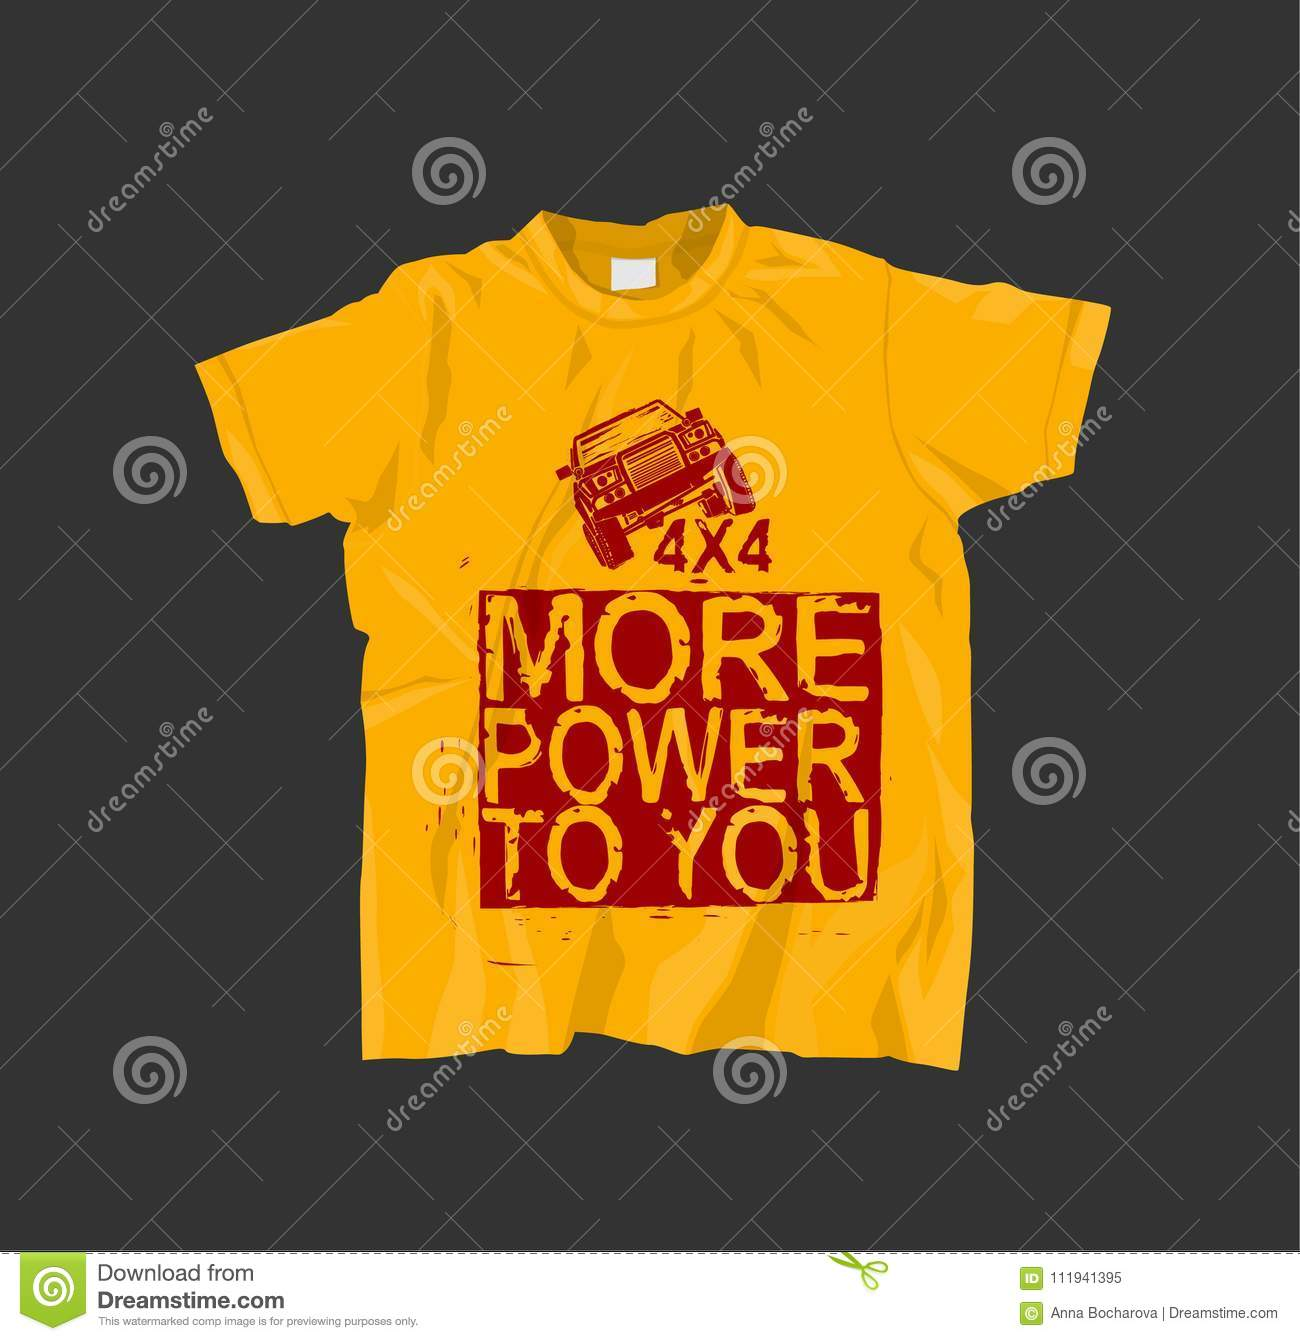 e3ac8cac2 Off-Road T-Shirts Design stock vector. Illustration of automobile ...